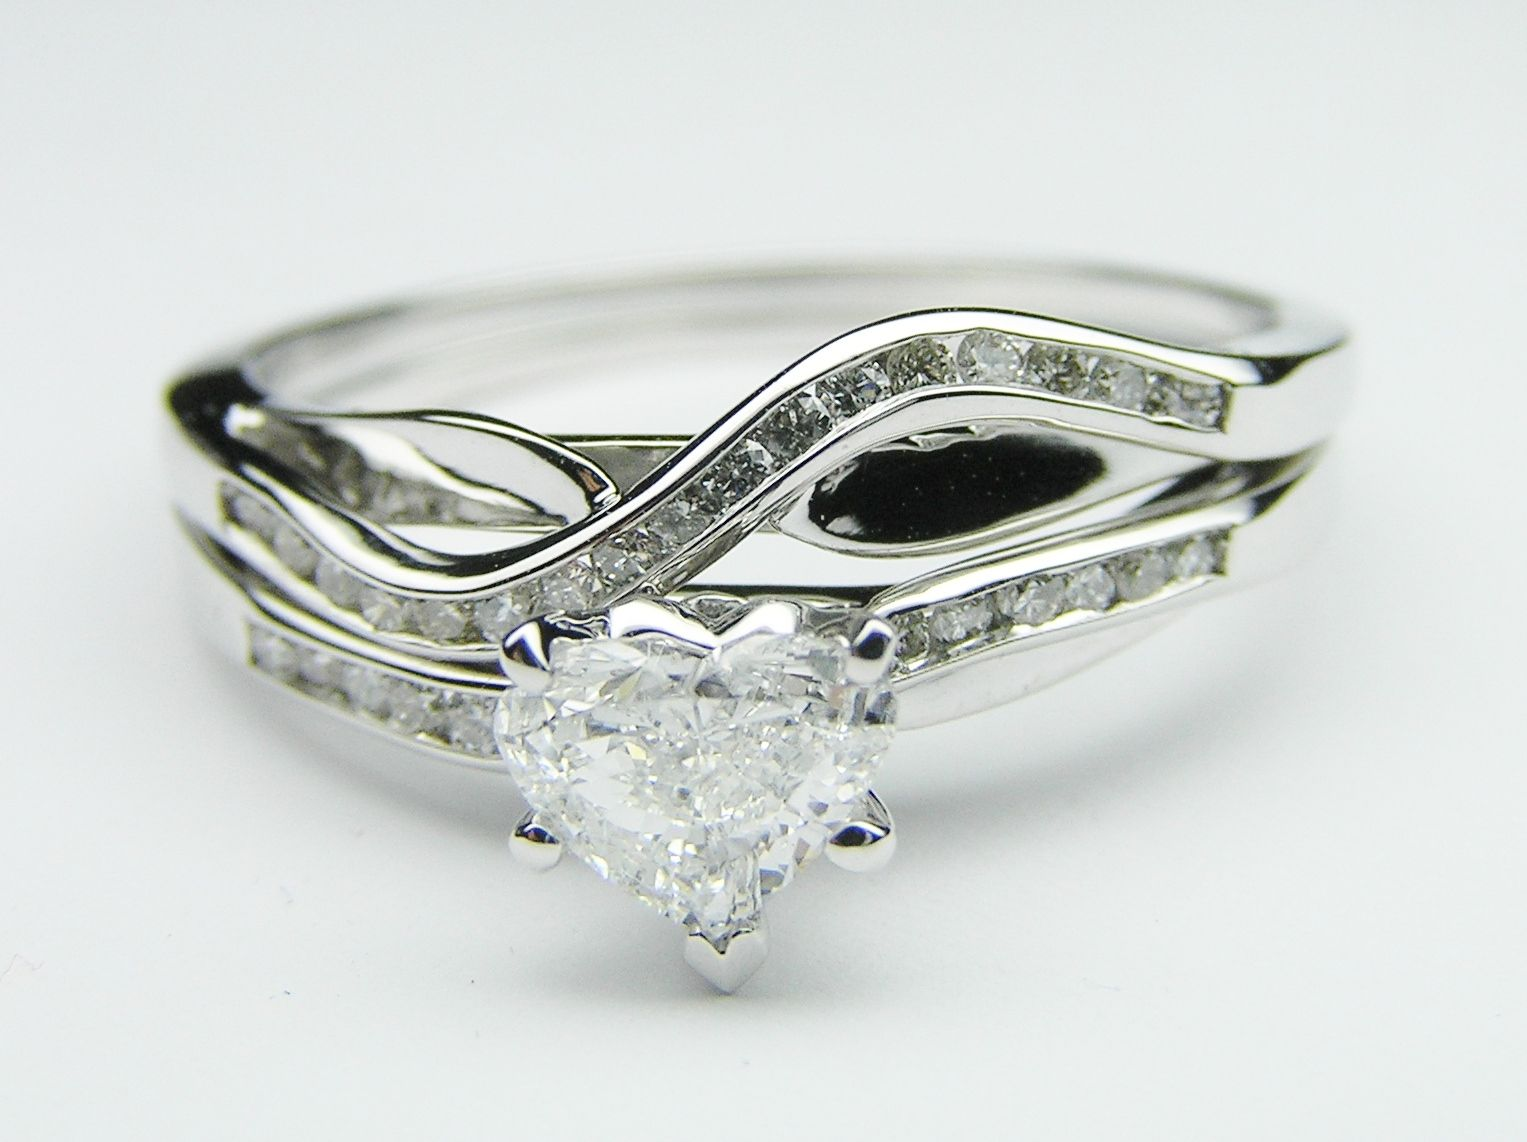 Swirl pattern white gold wedding ring for brides fashion fill - Petite Swirl Design Heart Shape Engagement Ring With Channel Set Round Diamond Accents